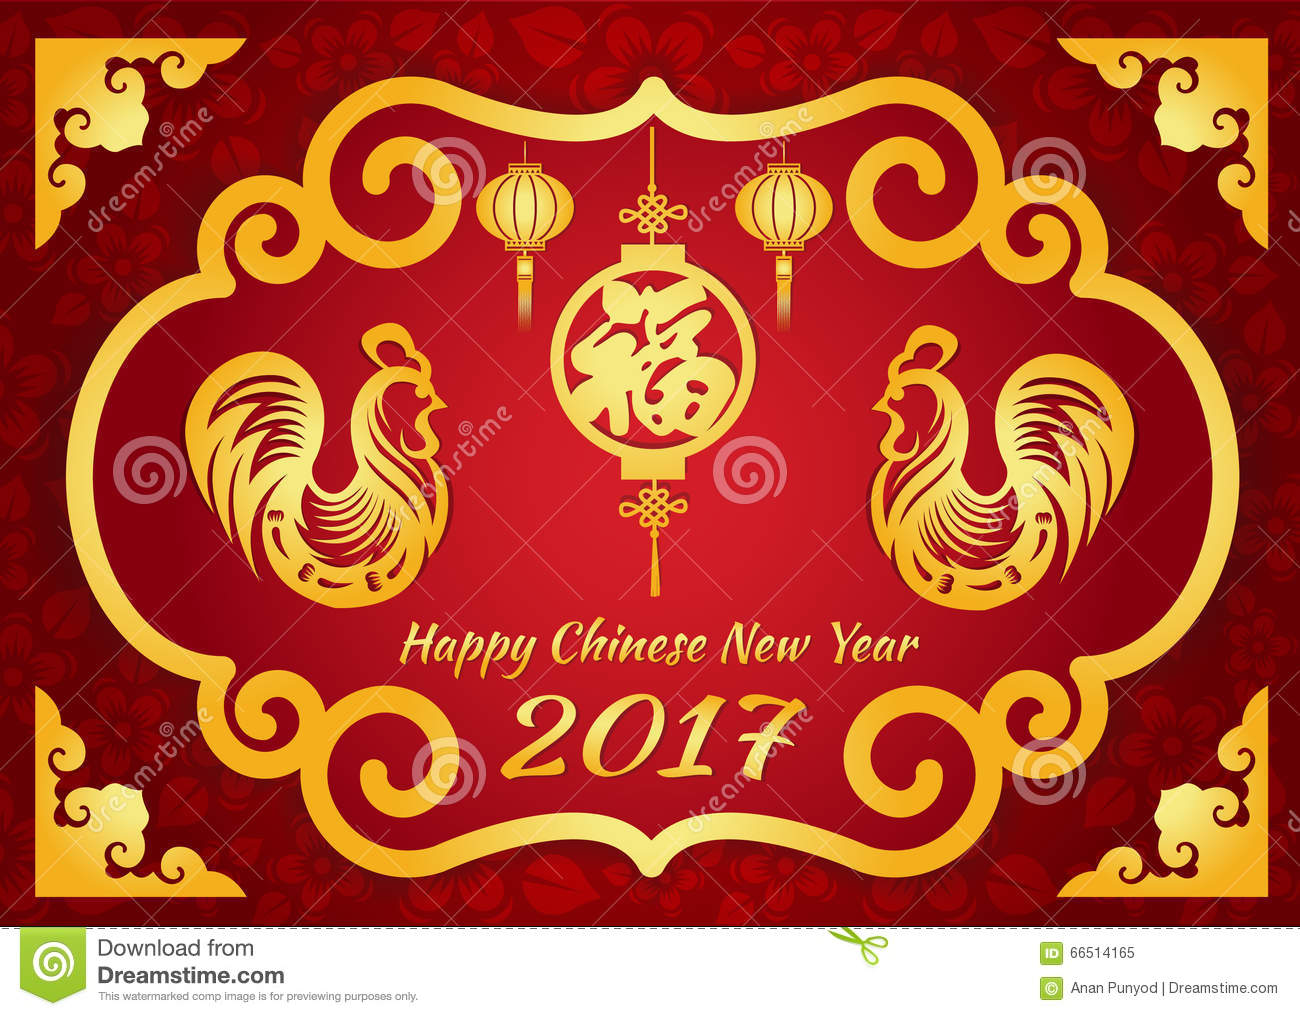 happy chinese new year 2017 card is lanterns 2 gold chicken and chinese word mean